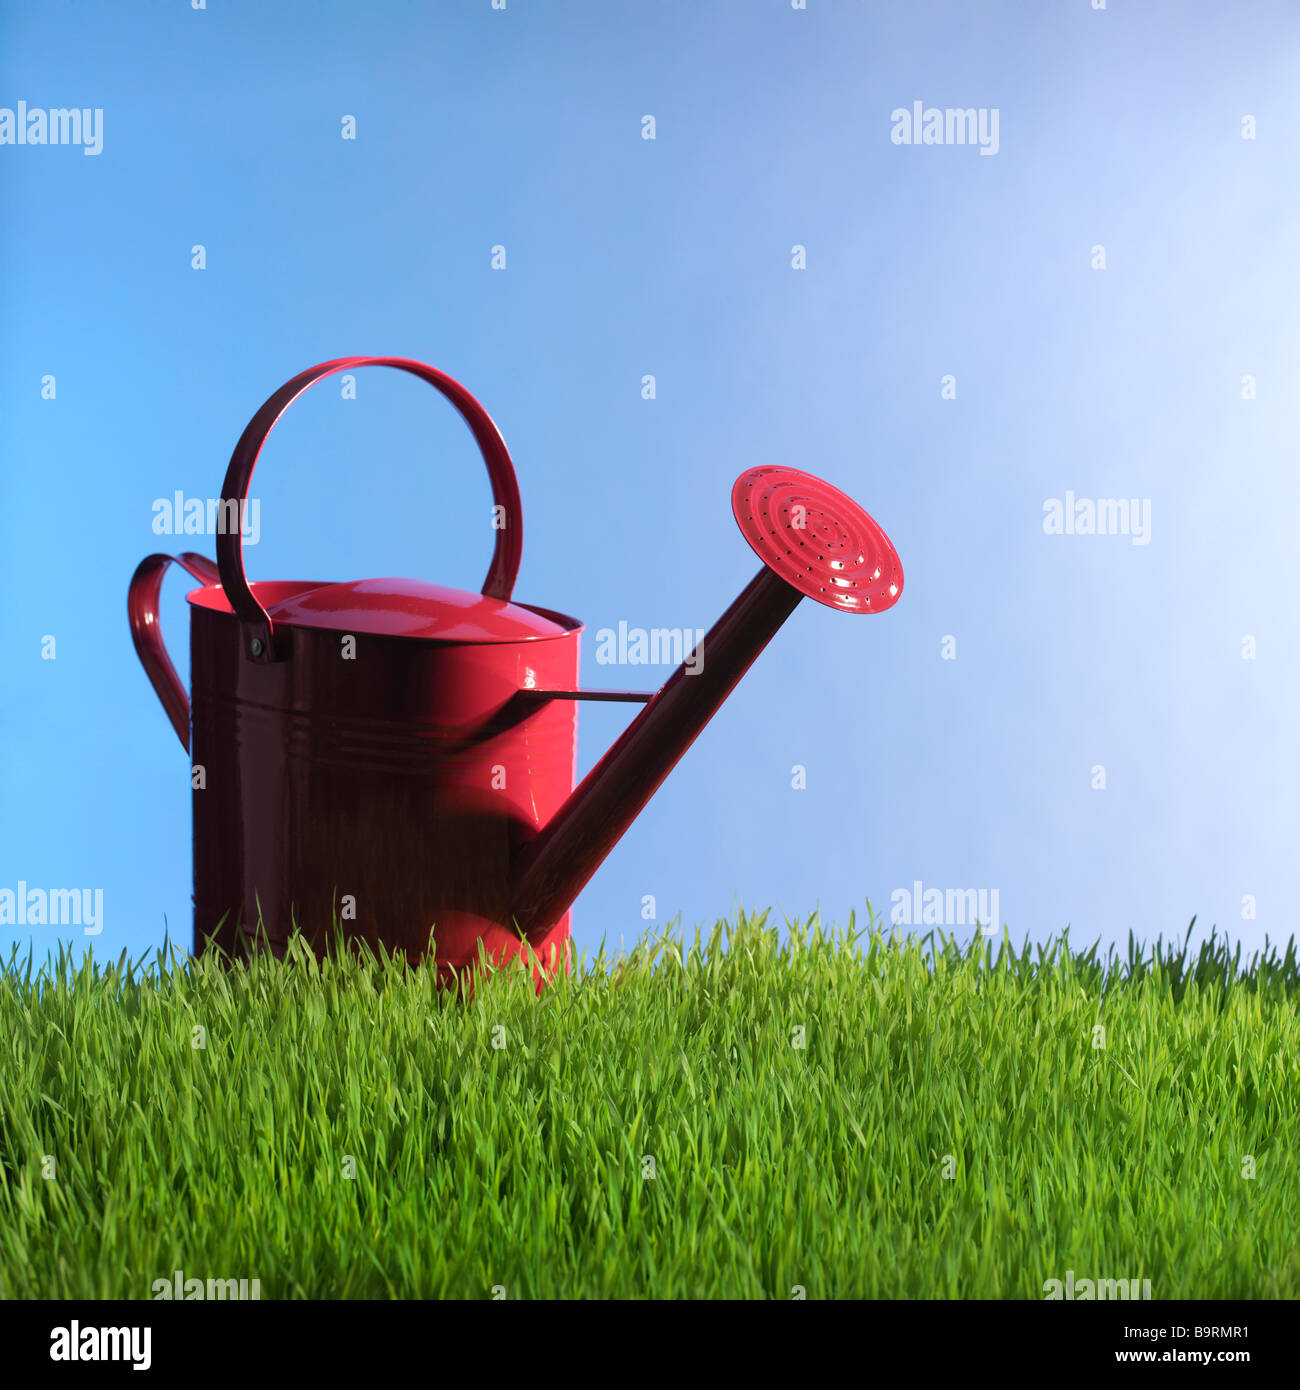 red watering can in grass - Stock Image